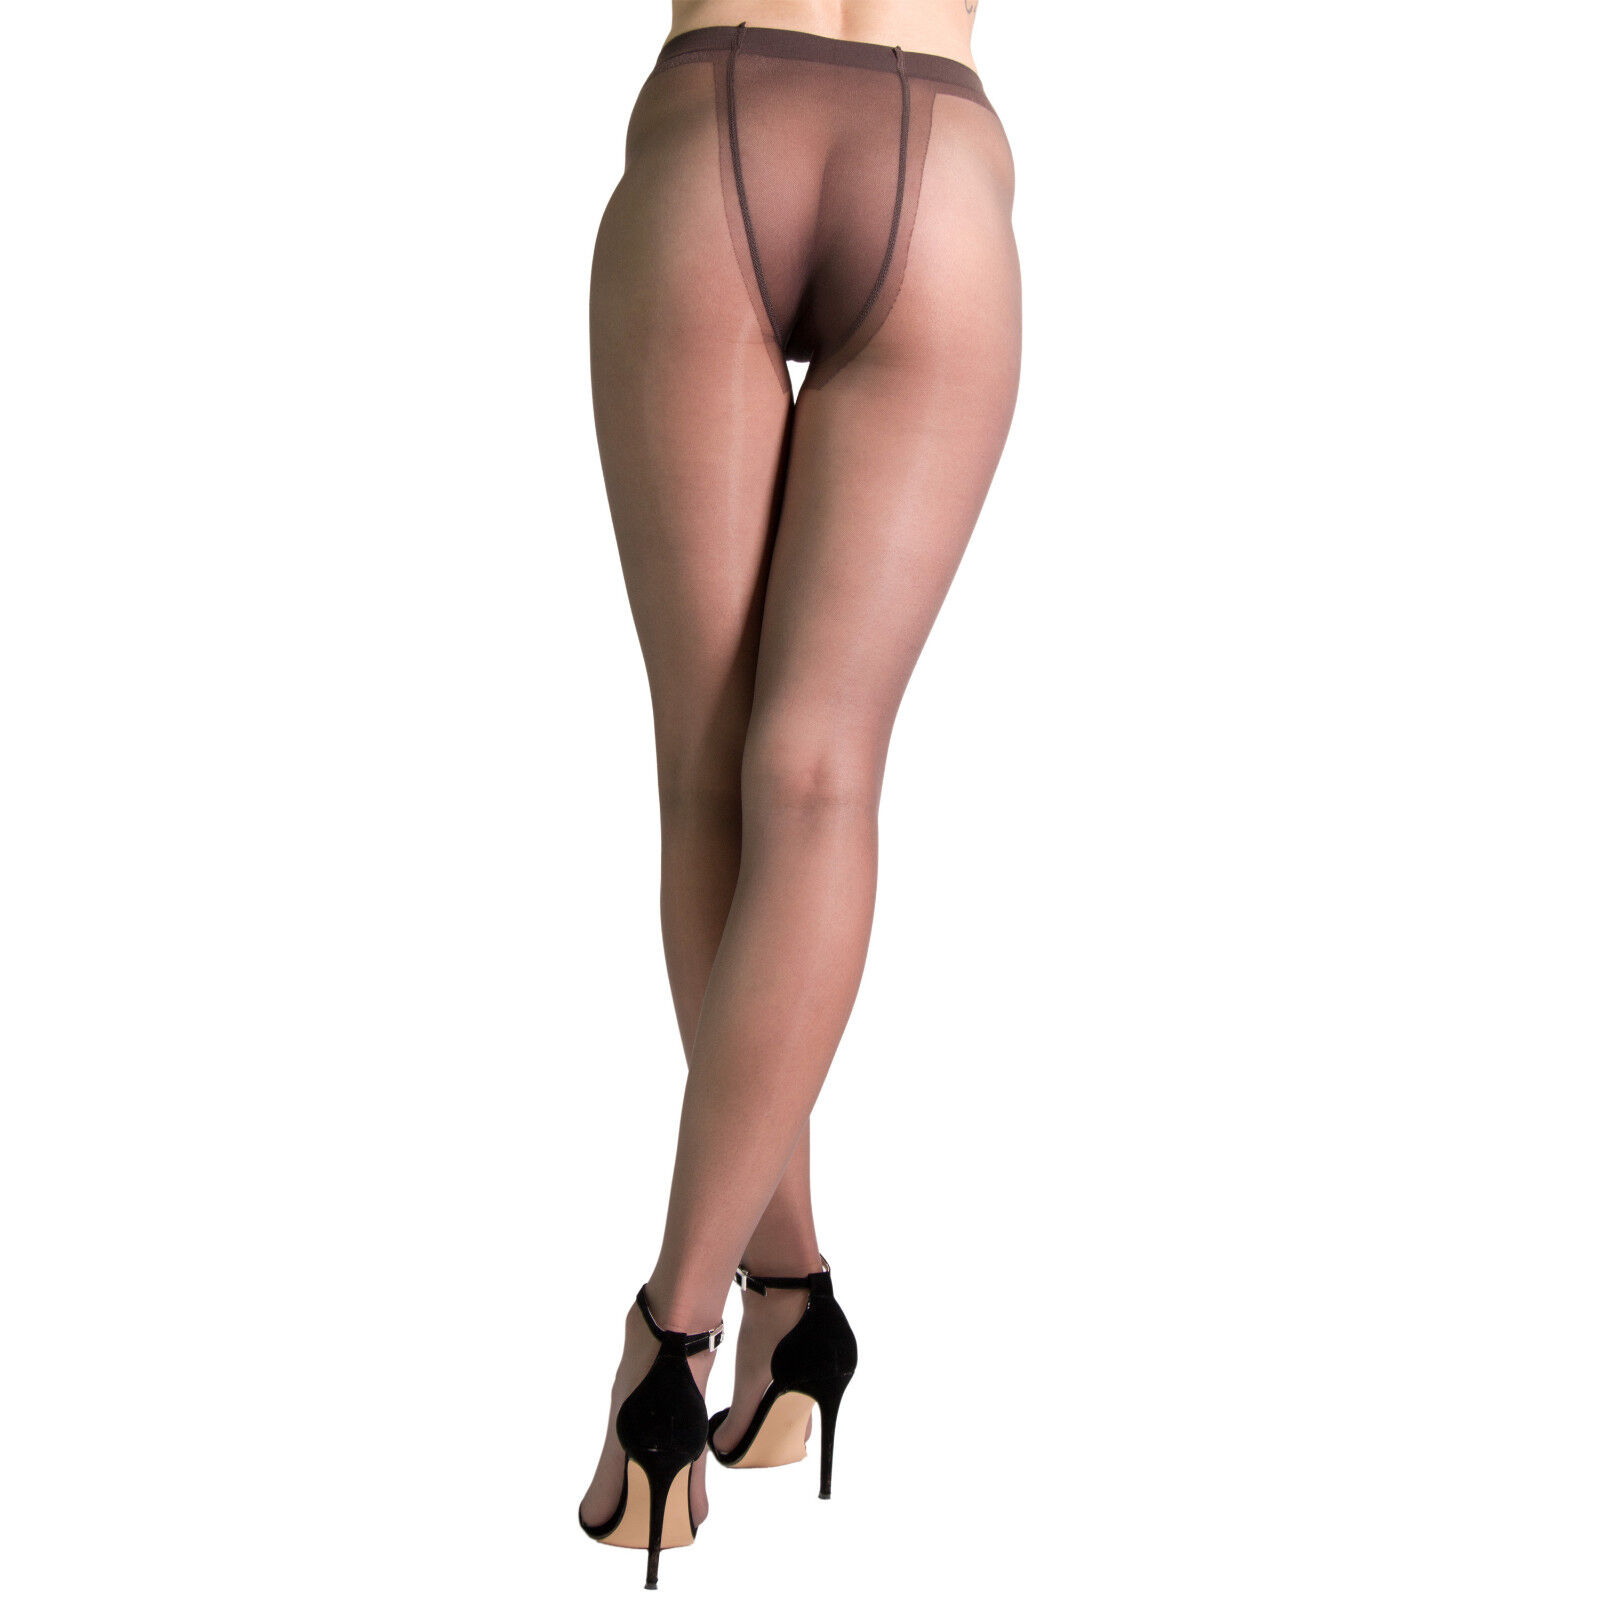 Classic pantyhose pantyhose have hit